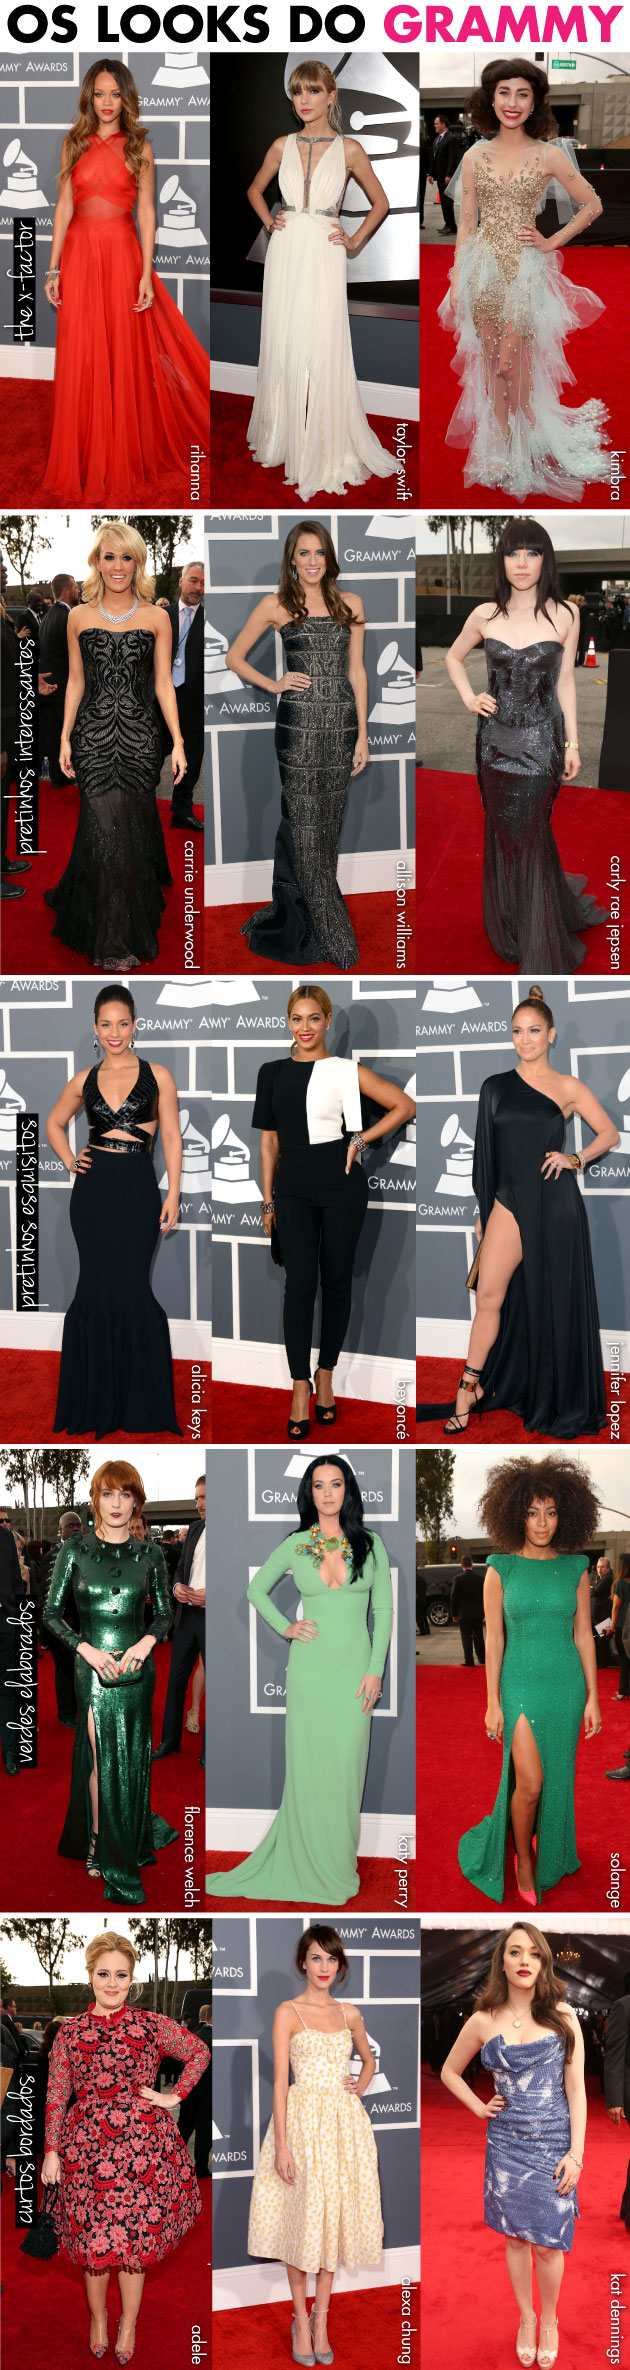 looks-grammy-2013-rihanna-kimbra-taylor-swift-adele-katy-perry-beyonce-j-lo-allison-williams-carly-rae-jepsen-alexa-chung-kat-dennings-solange-florence-welch-